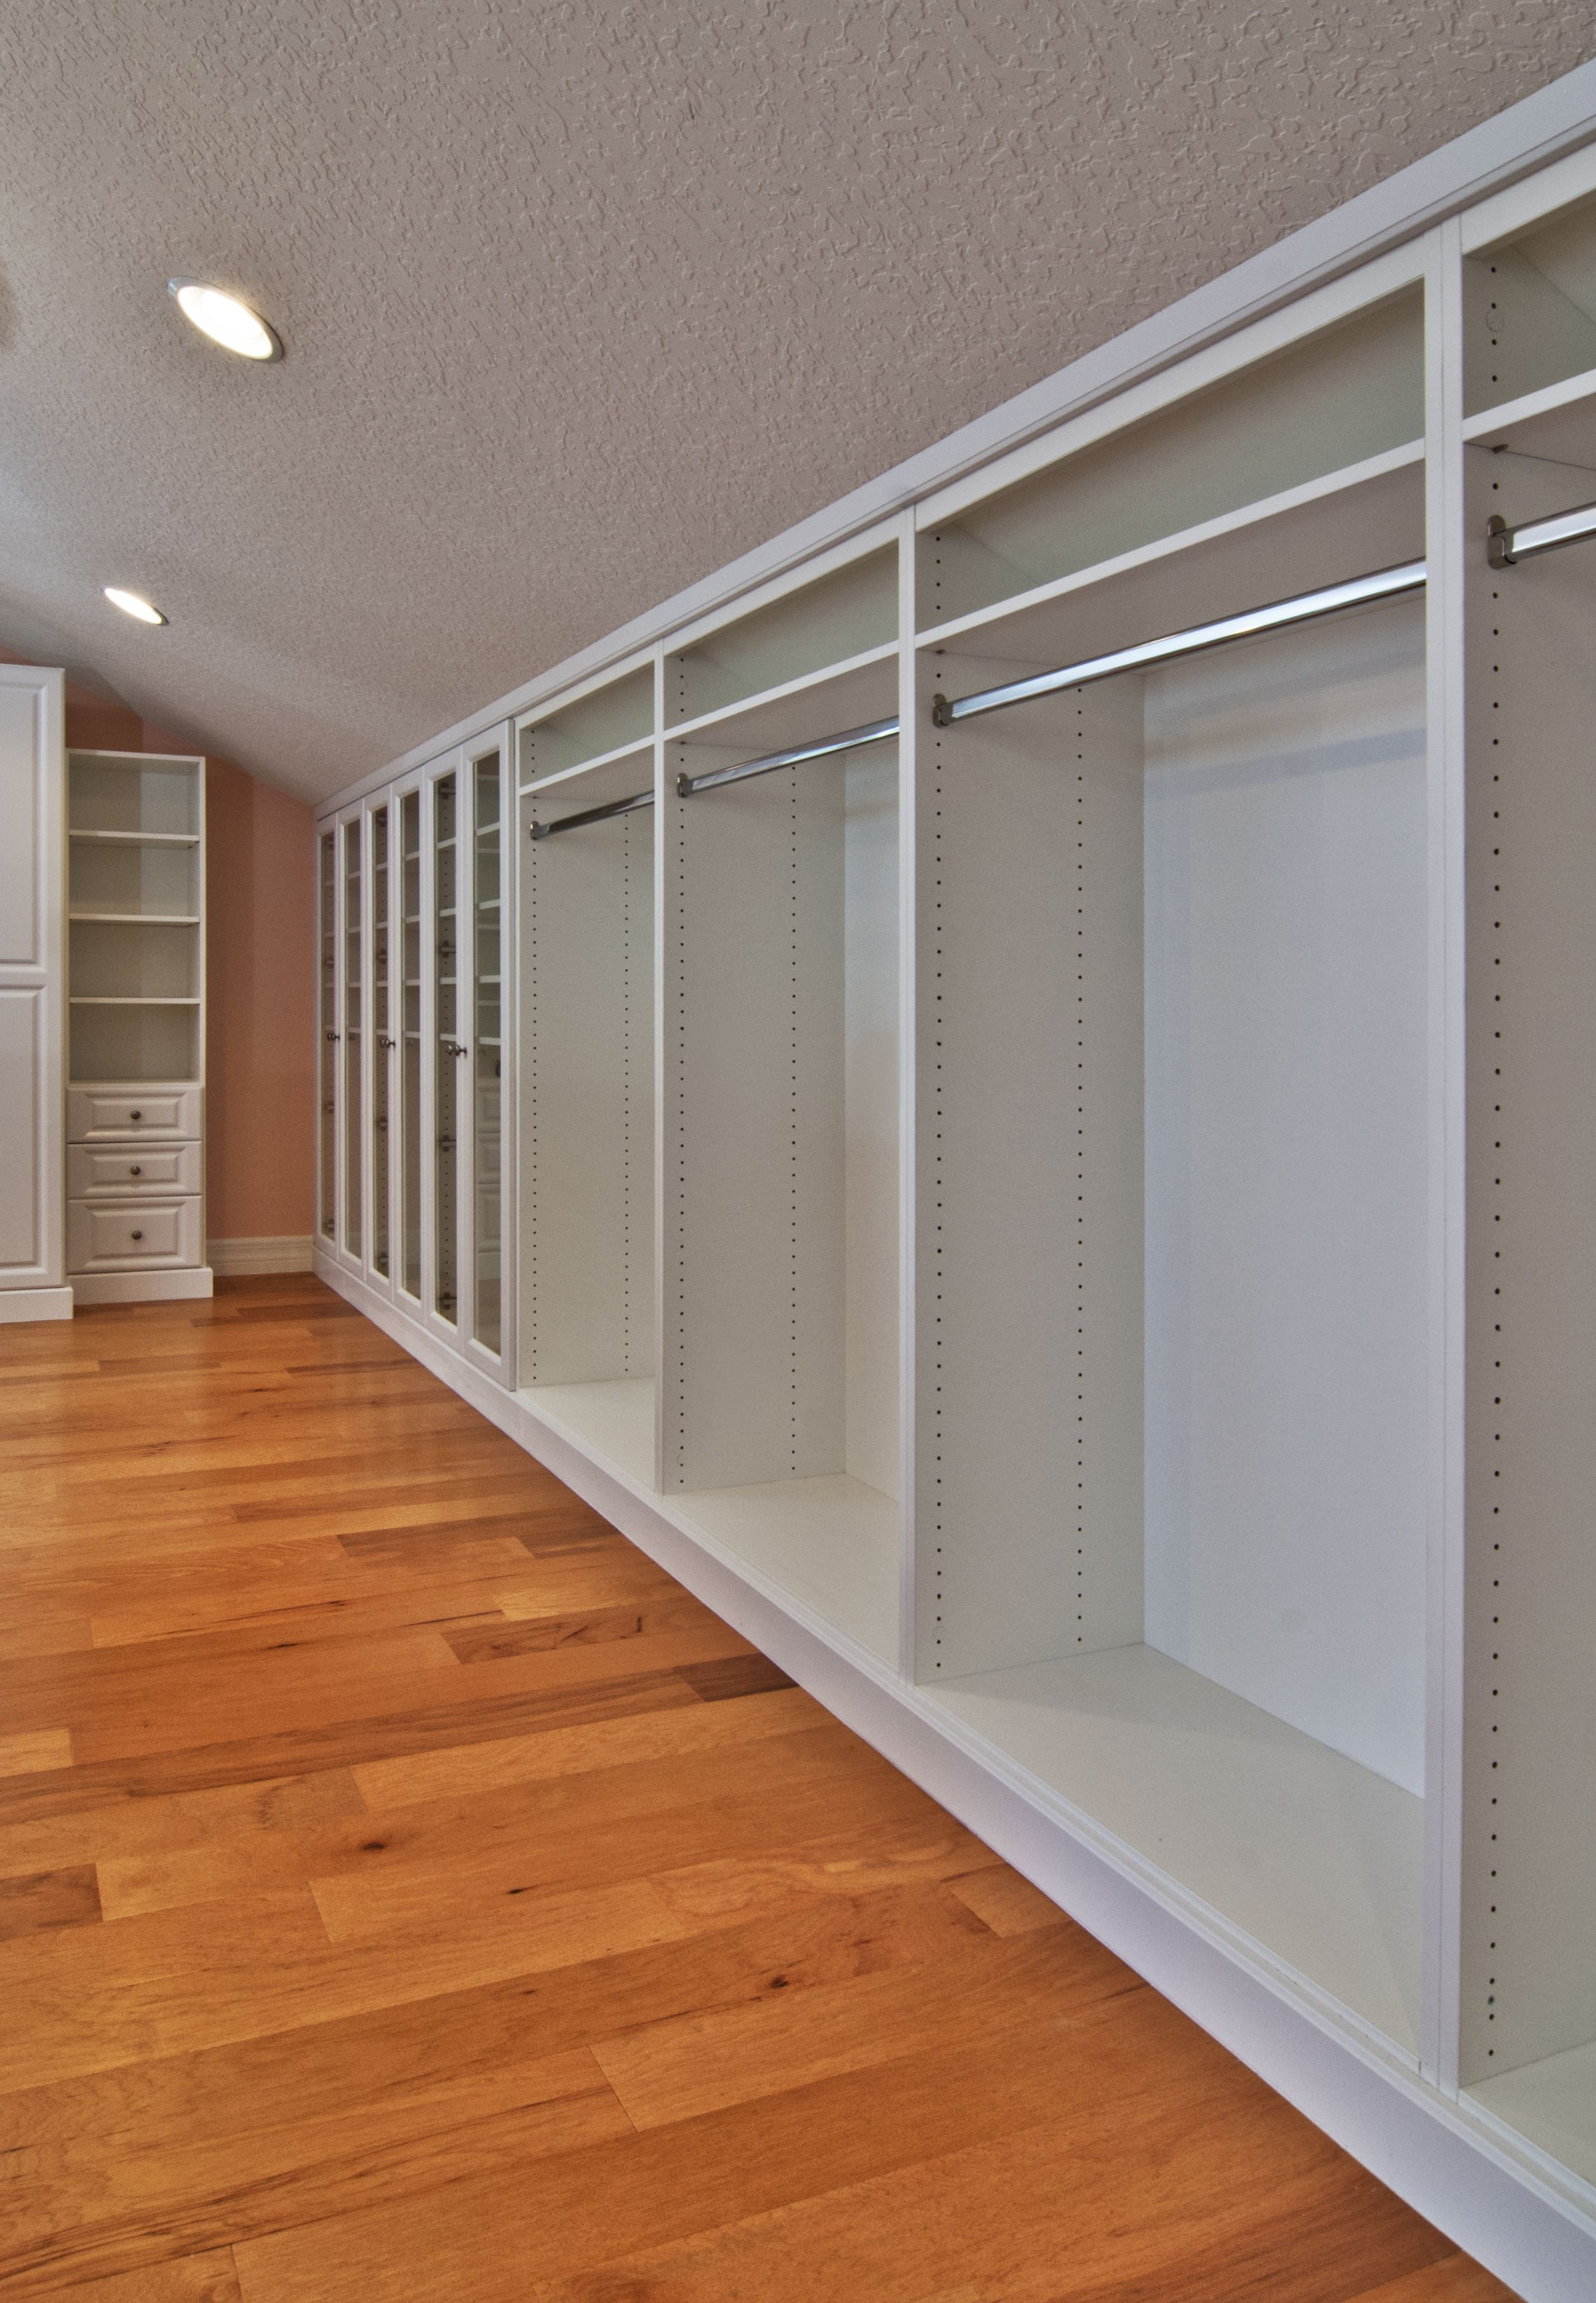 Master Closet White Inside Finished Attic With Angled Ceilings